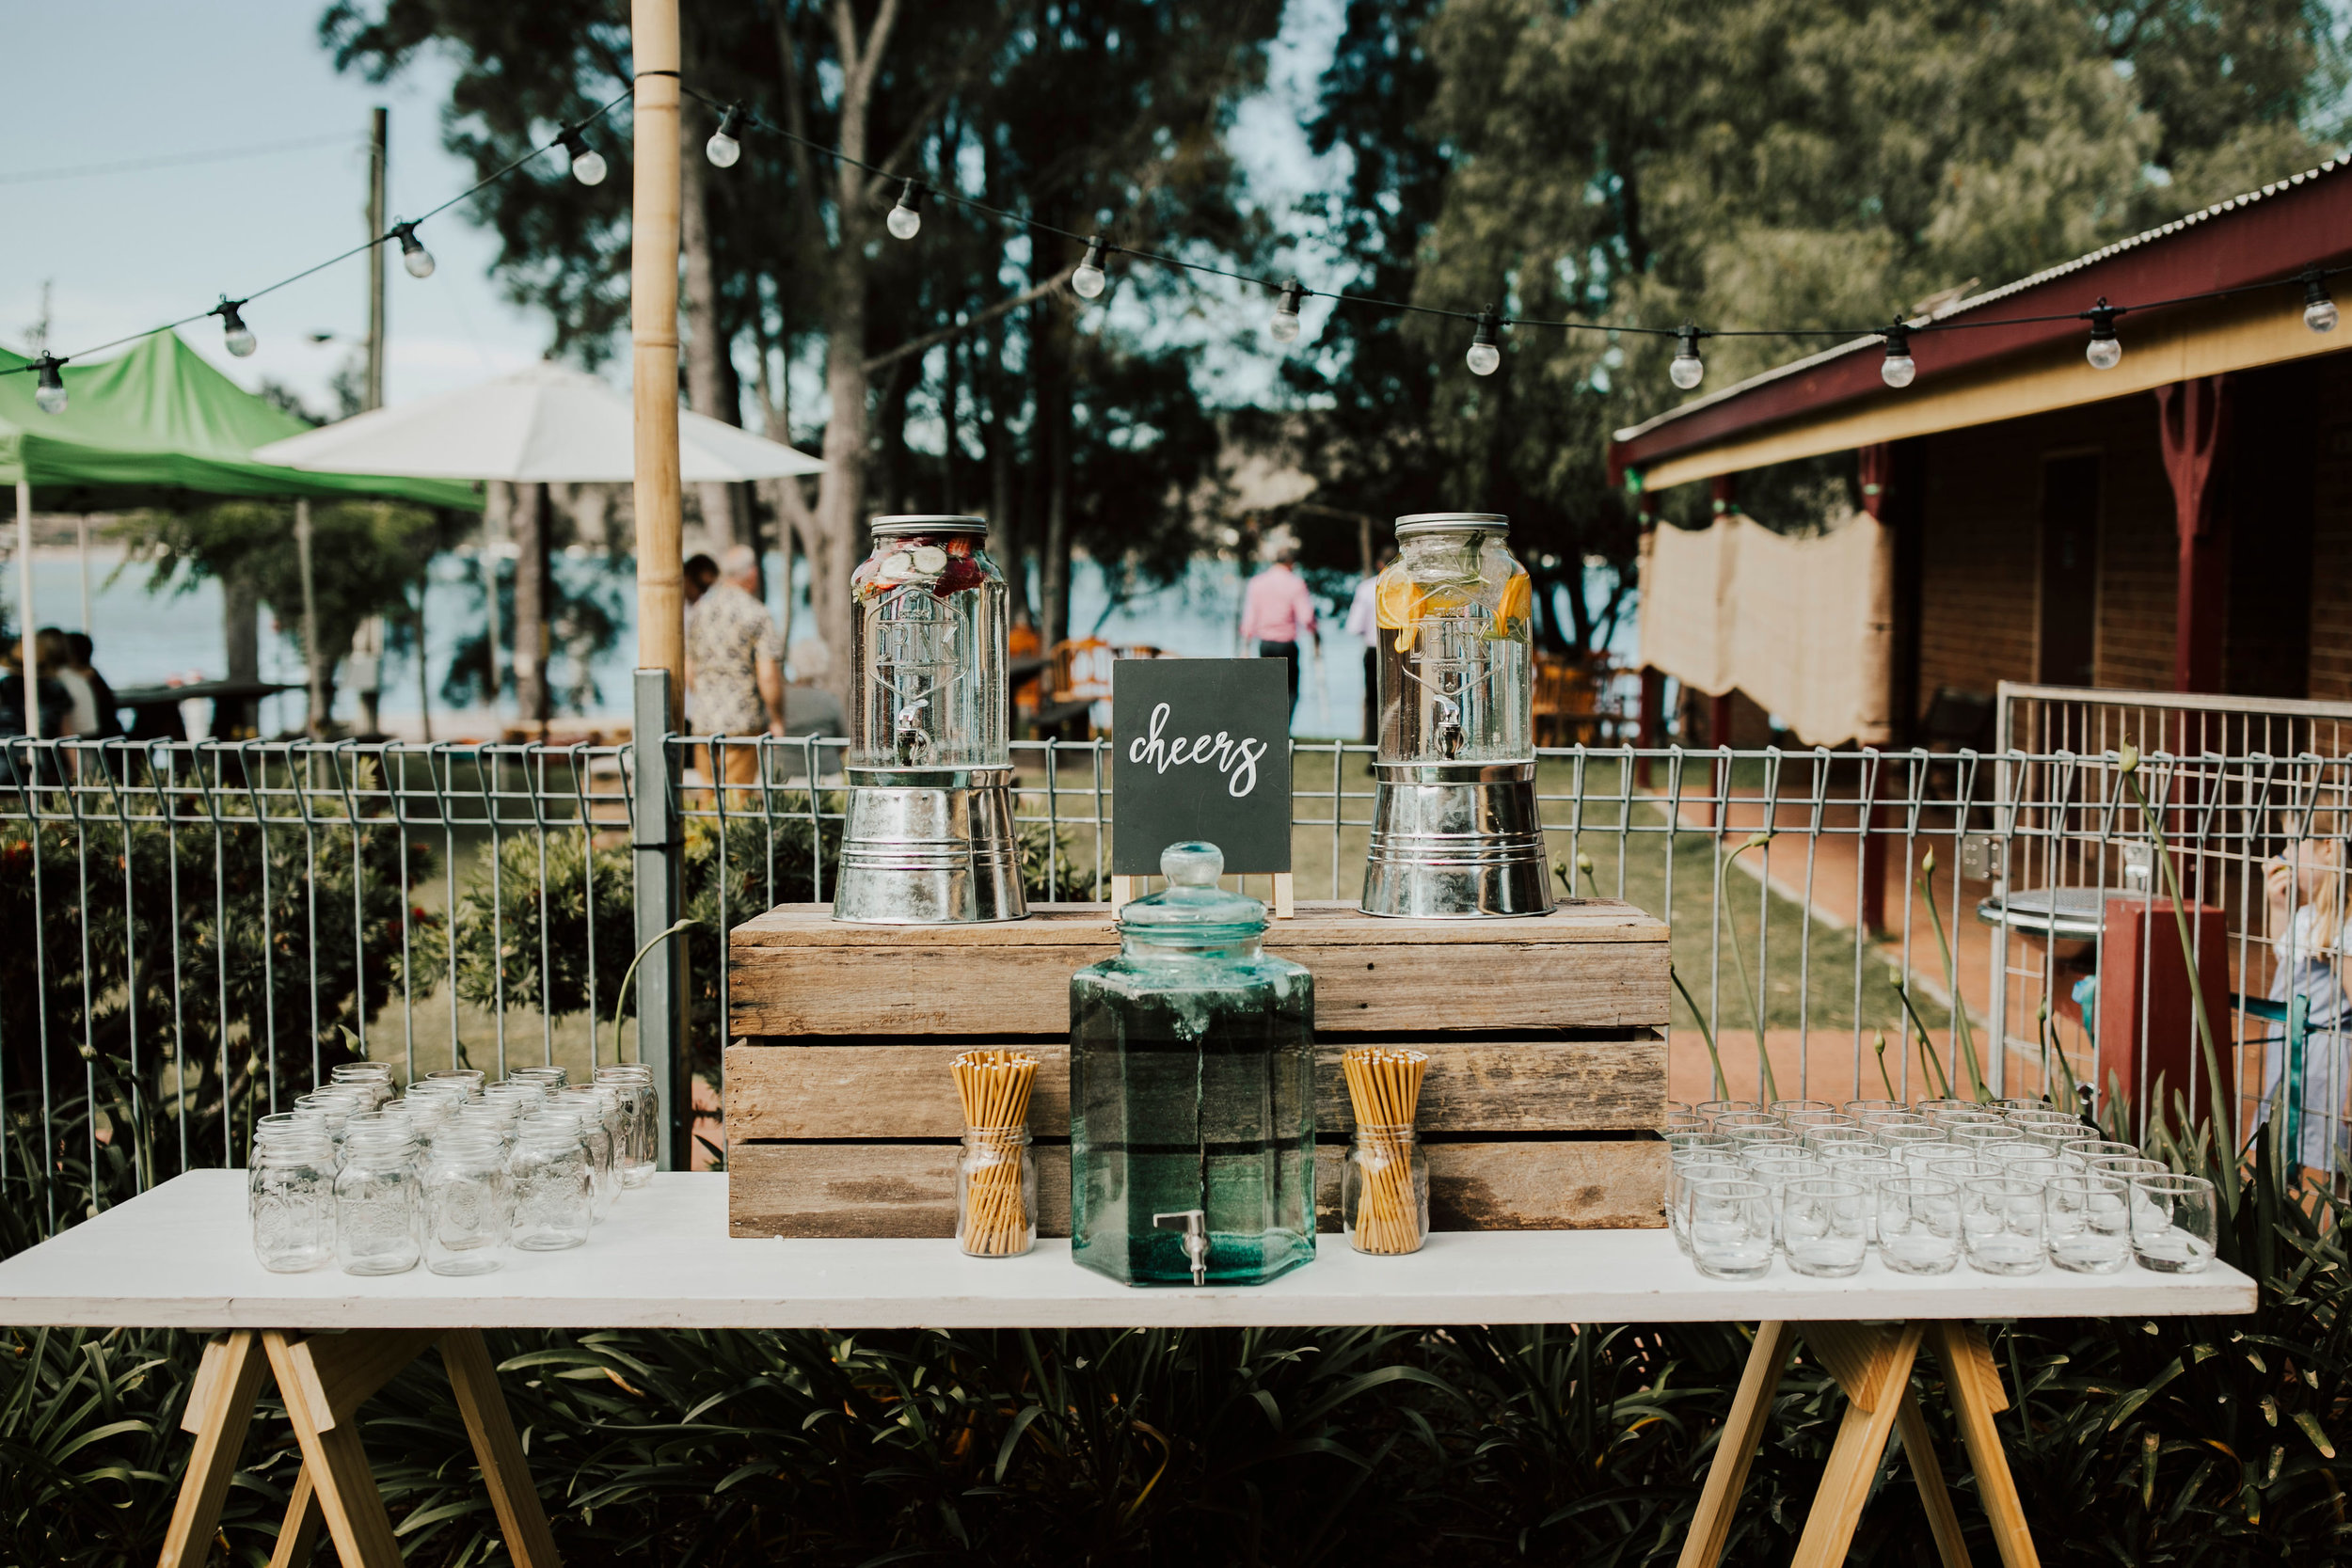 Hydration Station # $220 # Includes: trestle table, drink dispensers w/ fruit infused water, drinking jars, glassware, paper straws, bottled water, galvanised buckets, decor and signage.